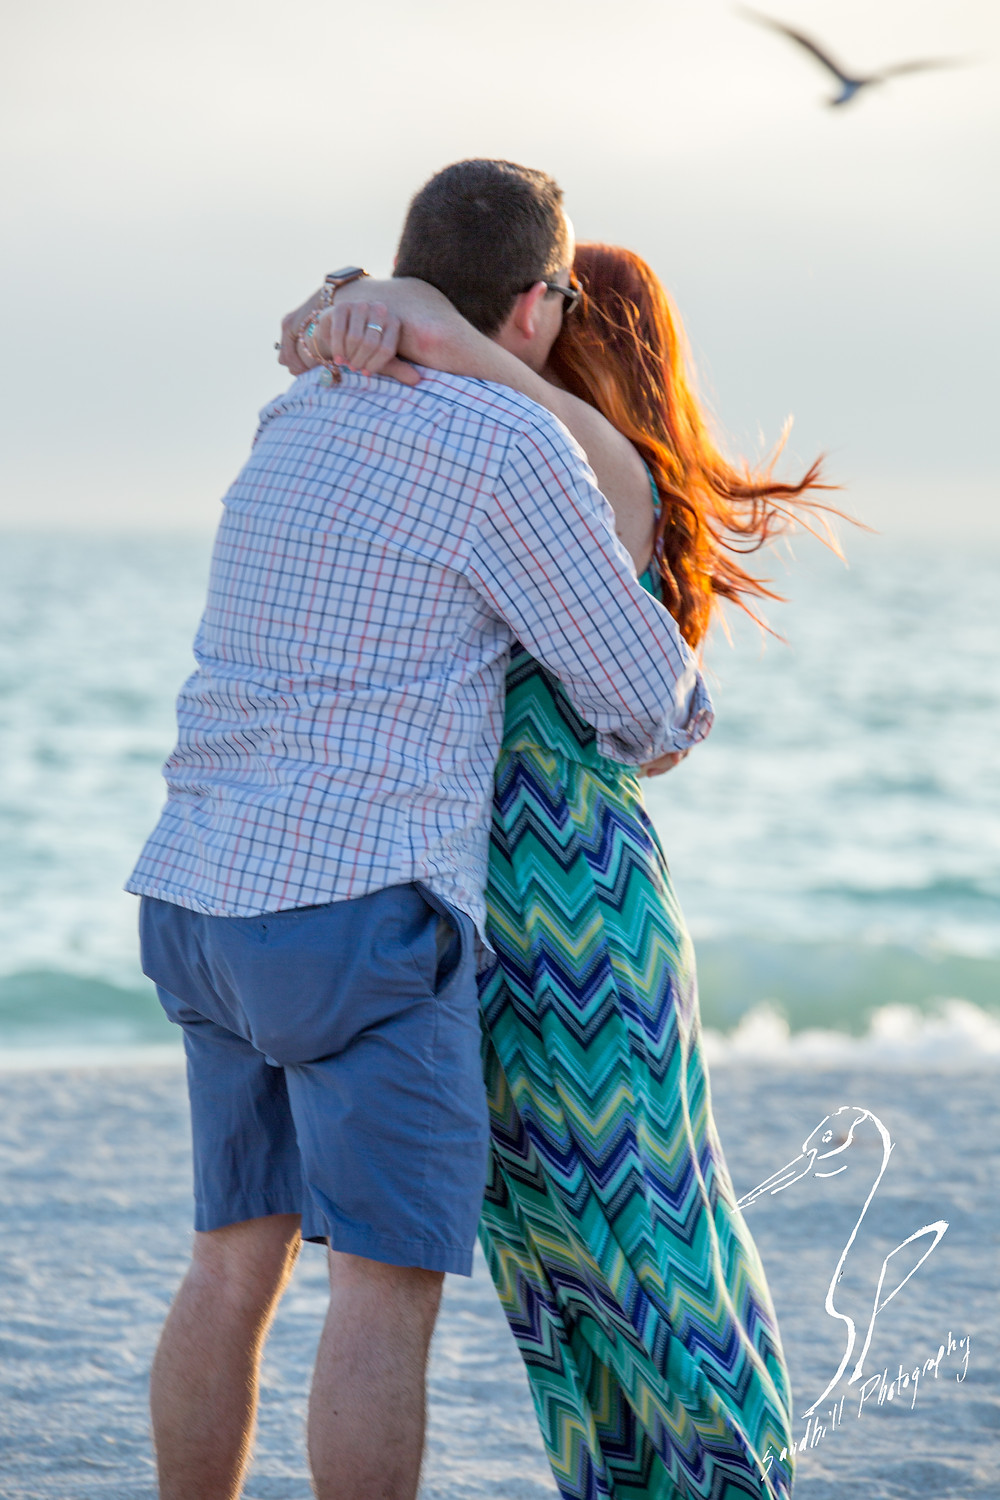 Anna Maria Island Engagement Session Holmes Beach Sunset flash Photography Engagement proposal sand ocean bird hug chevron dress